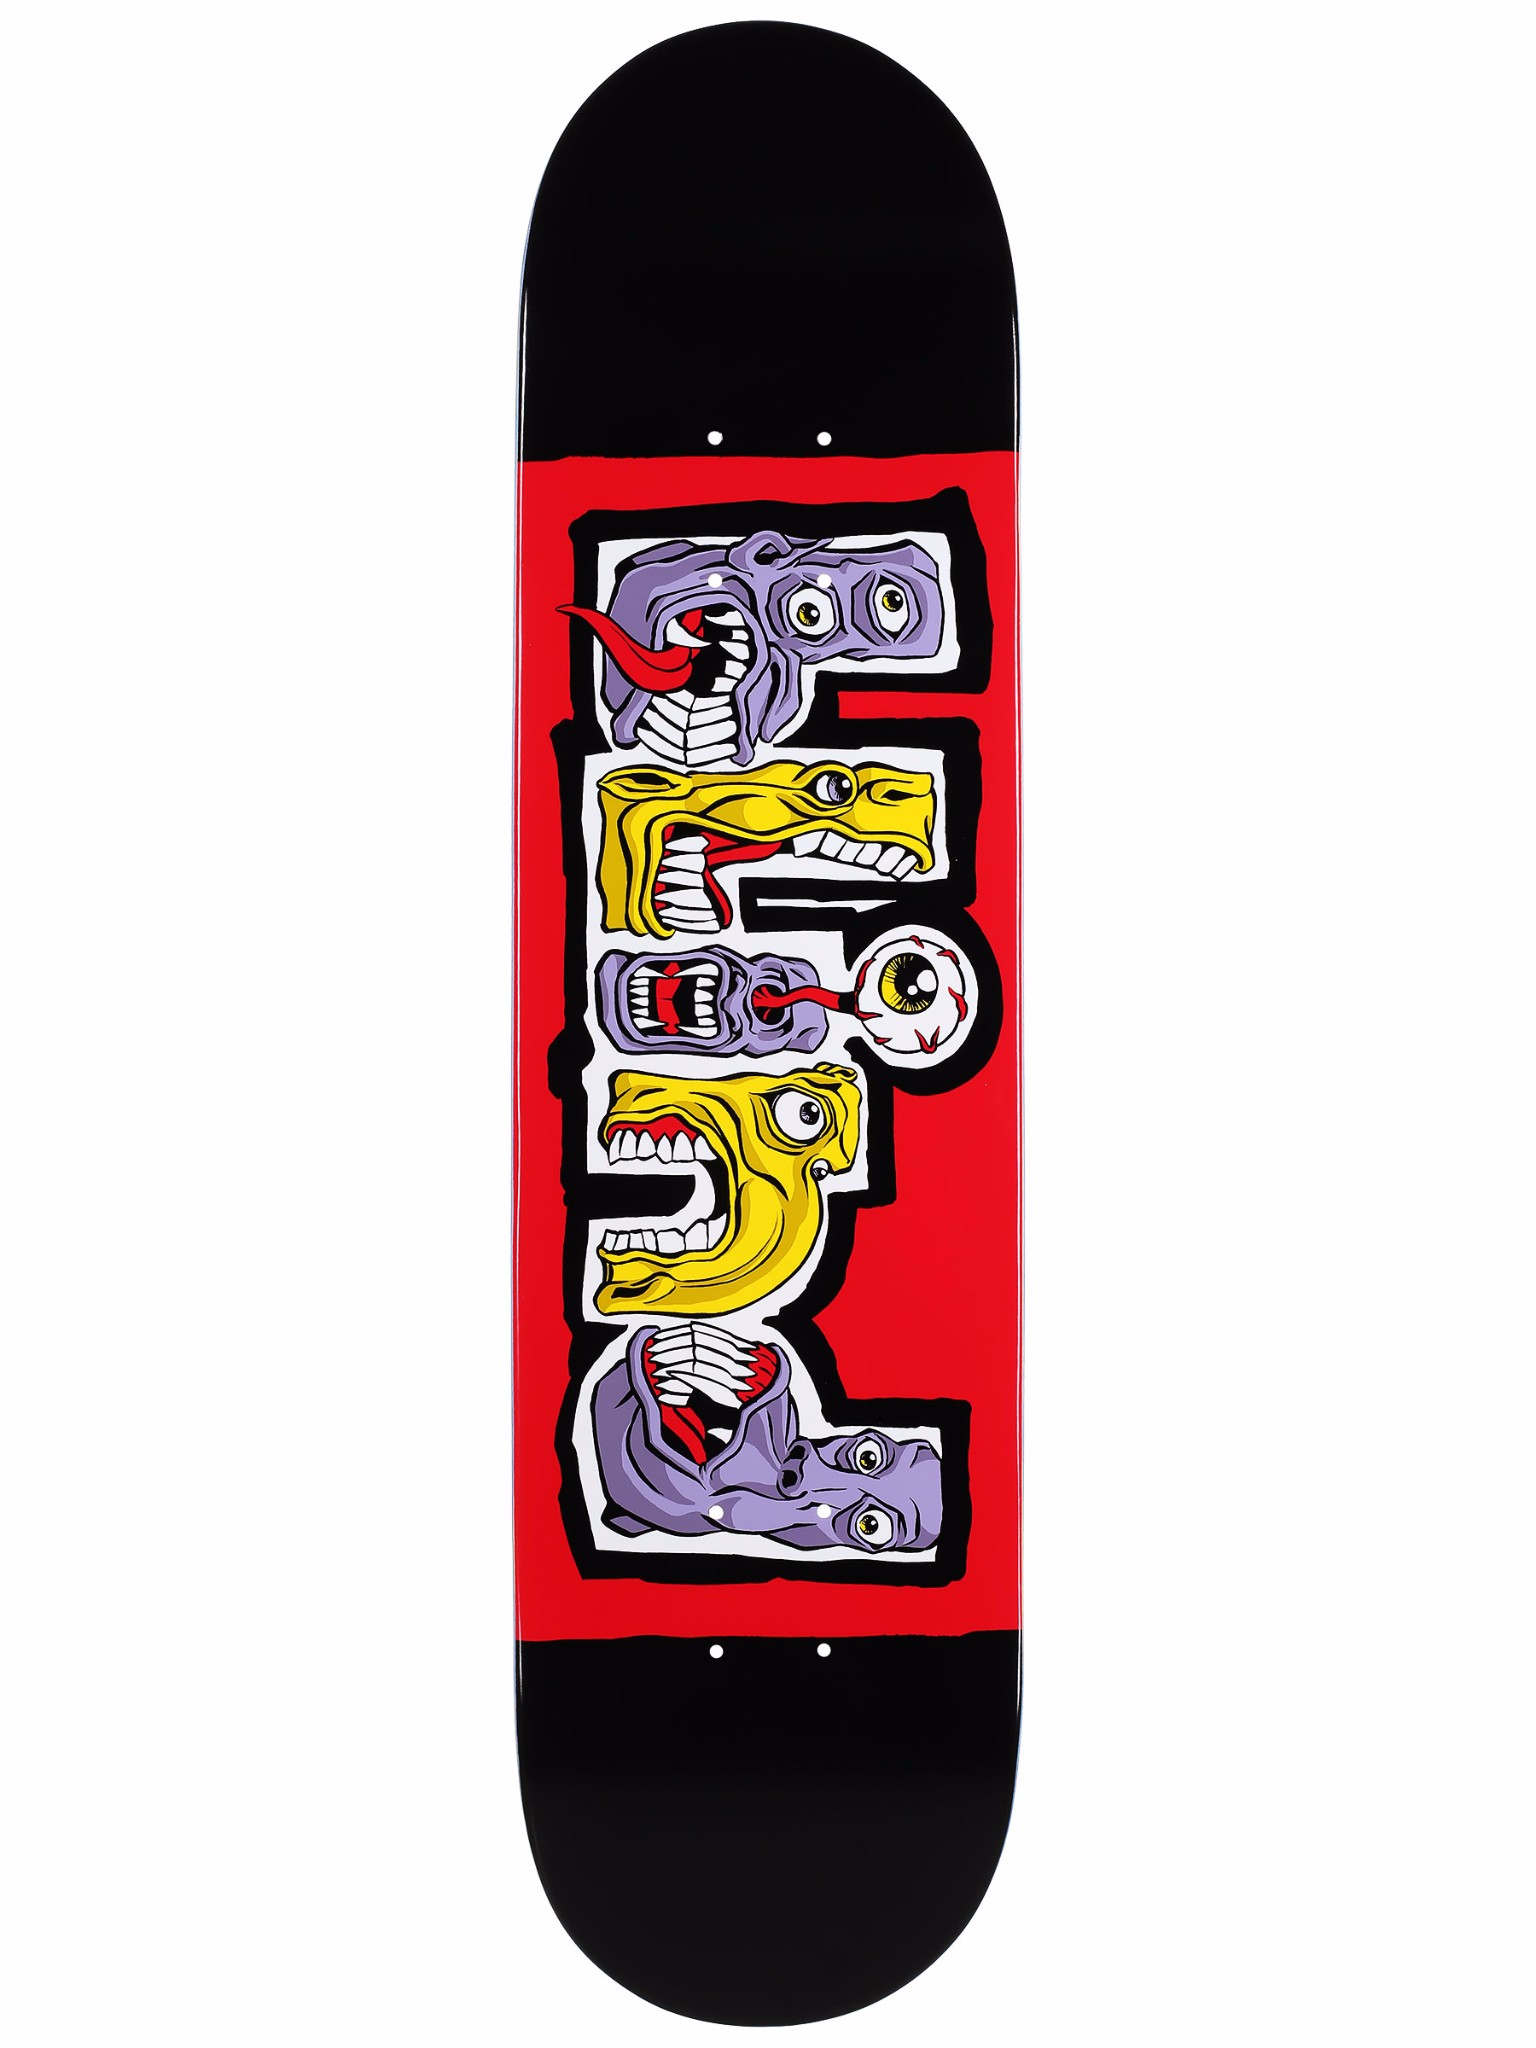 Blind Skateboard Deck Hungry Black Red 7.75 FREE GRIP